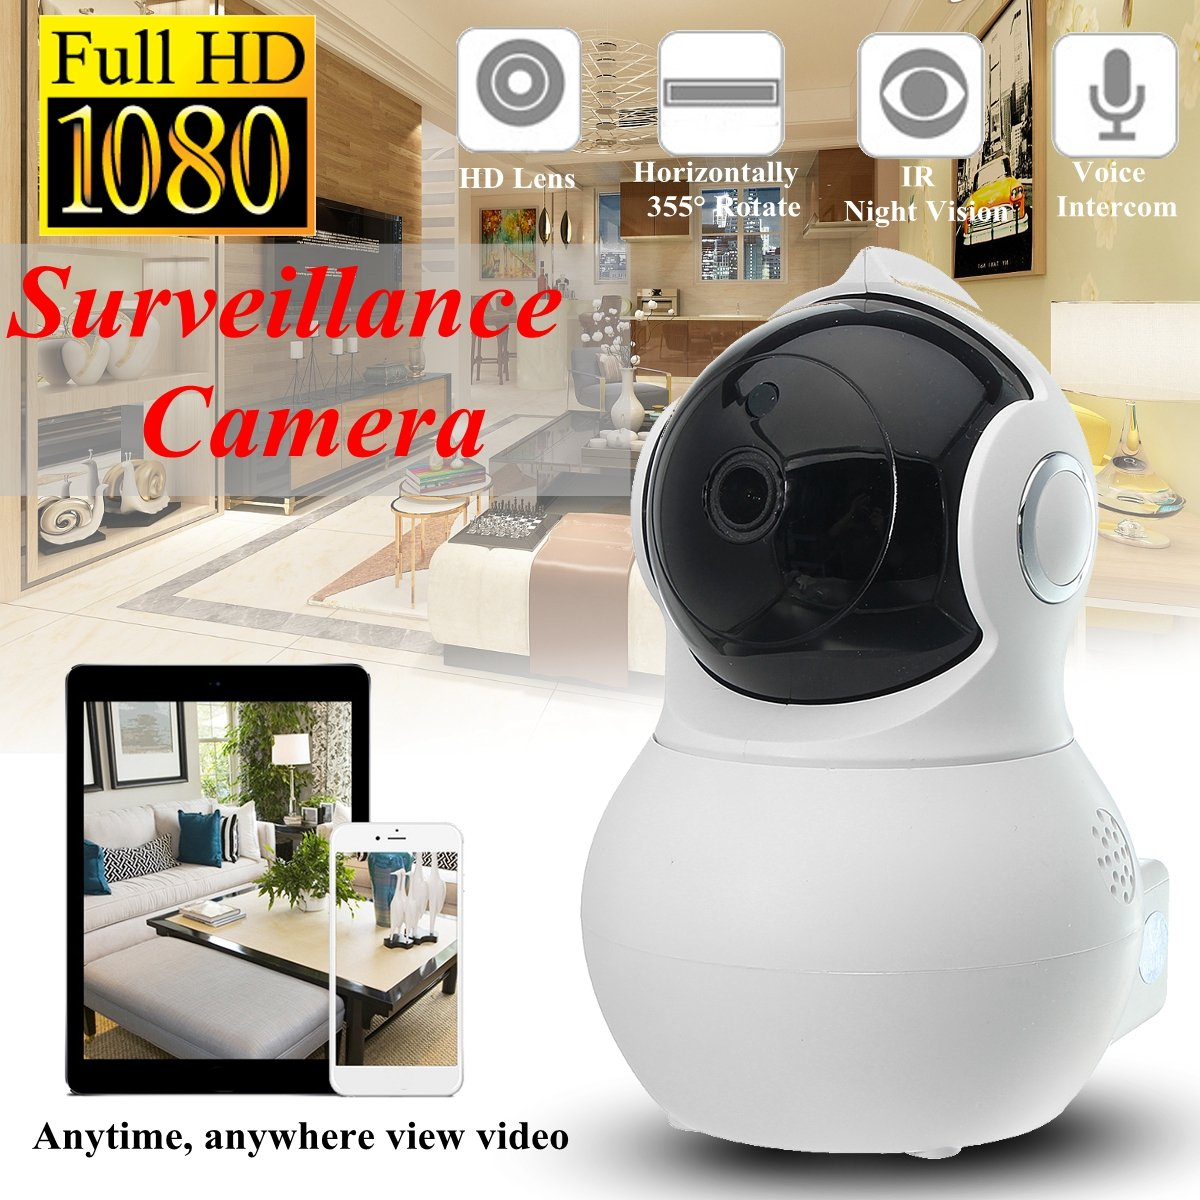 360 Panoramic Bulb WiFi Camera - 1080P Dome Security Surveillance Cameras 180 Degree Rotate Wireless Cam Night Vision Motion Detection Pet Baby Monitor Webcam for Outdoor Indoor (01 Light Bulb Camera) PalmTalkHome